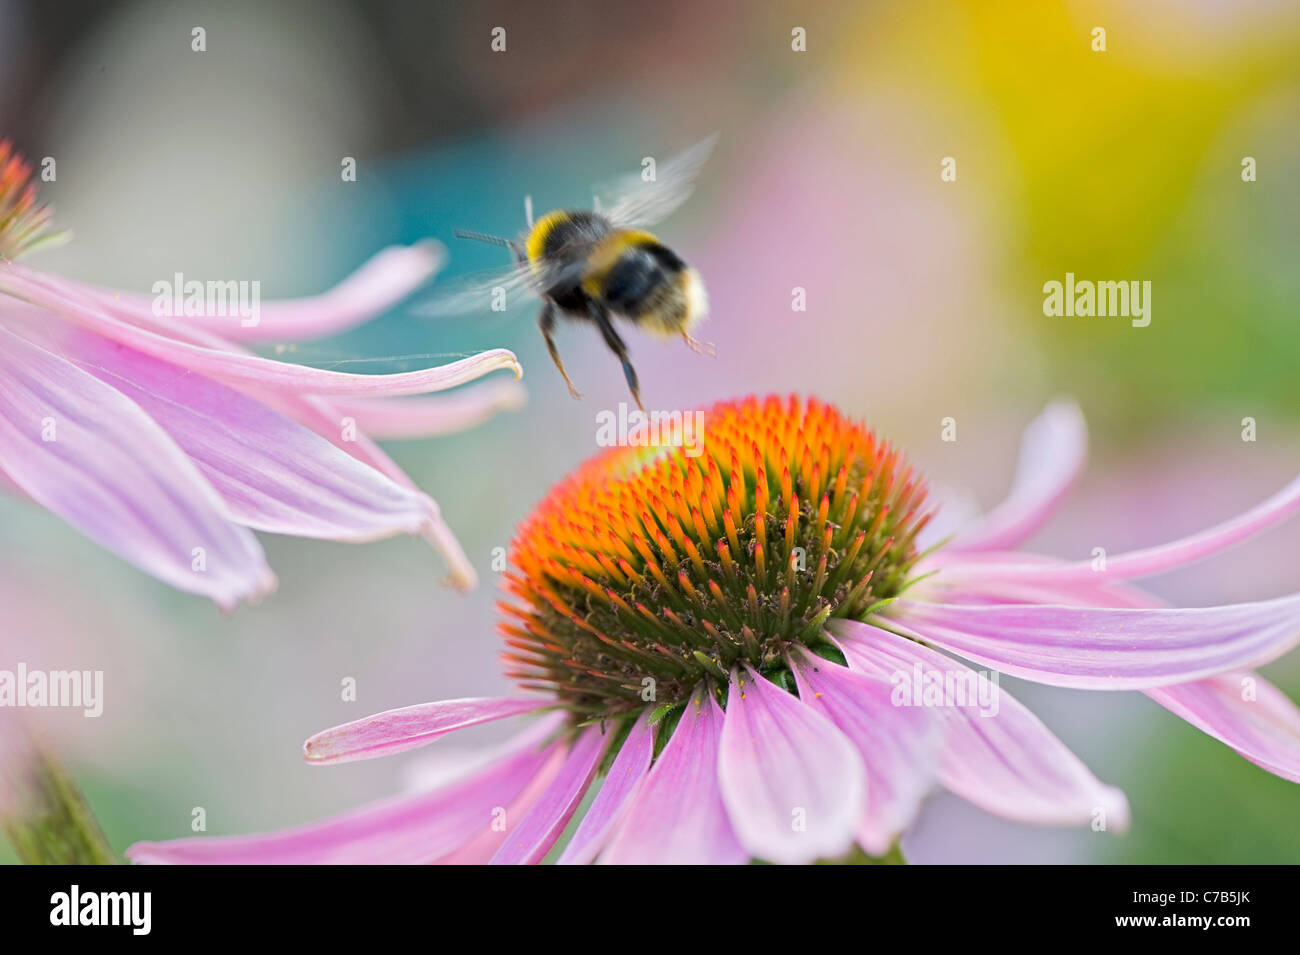 Echinacea purpurea Eastern purple cone flowers or Purple coneflower with a bumble bee collecting pollen Stock Photo